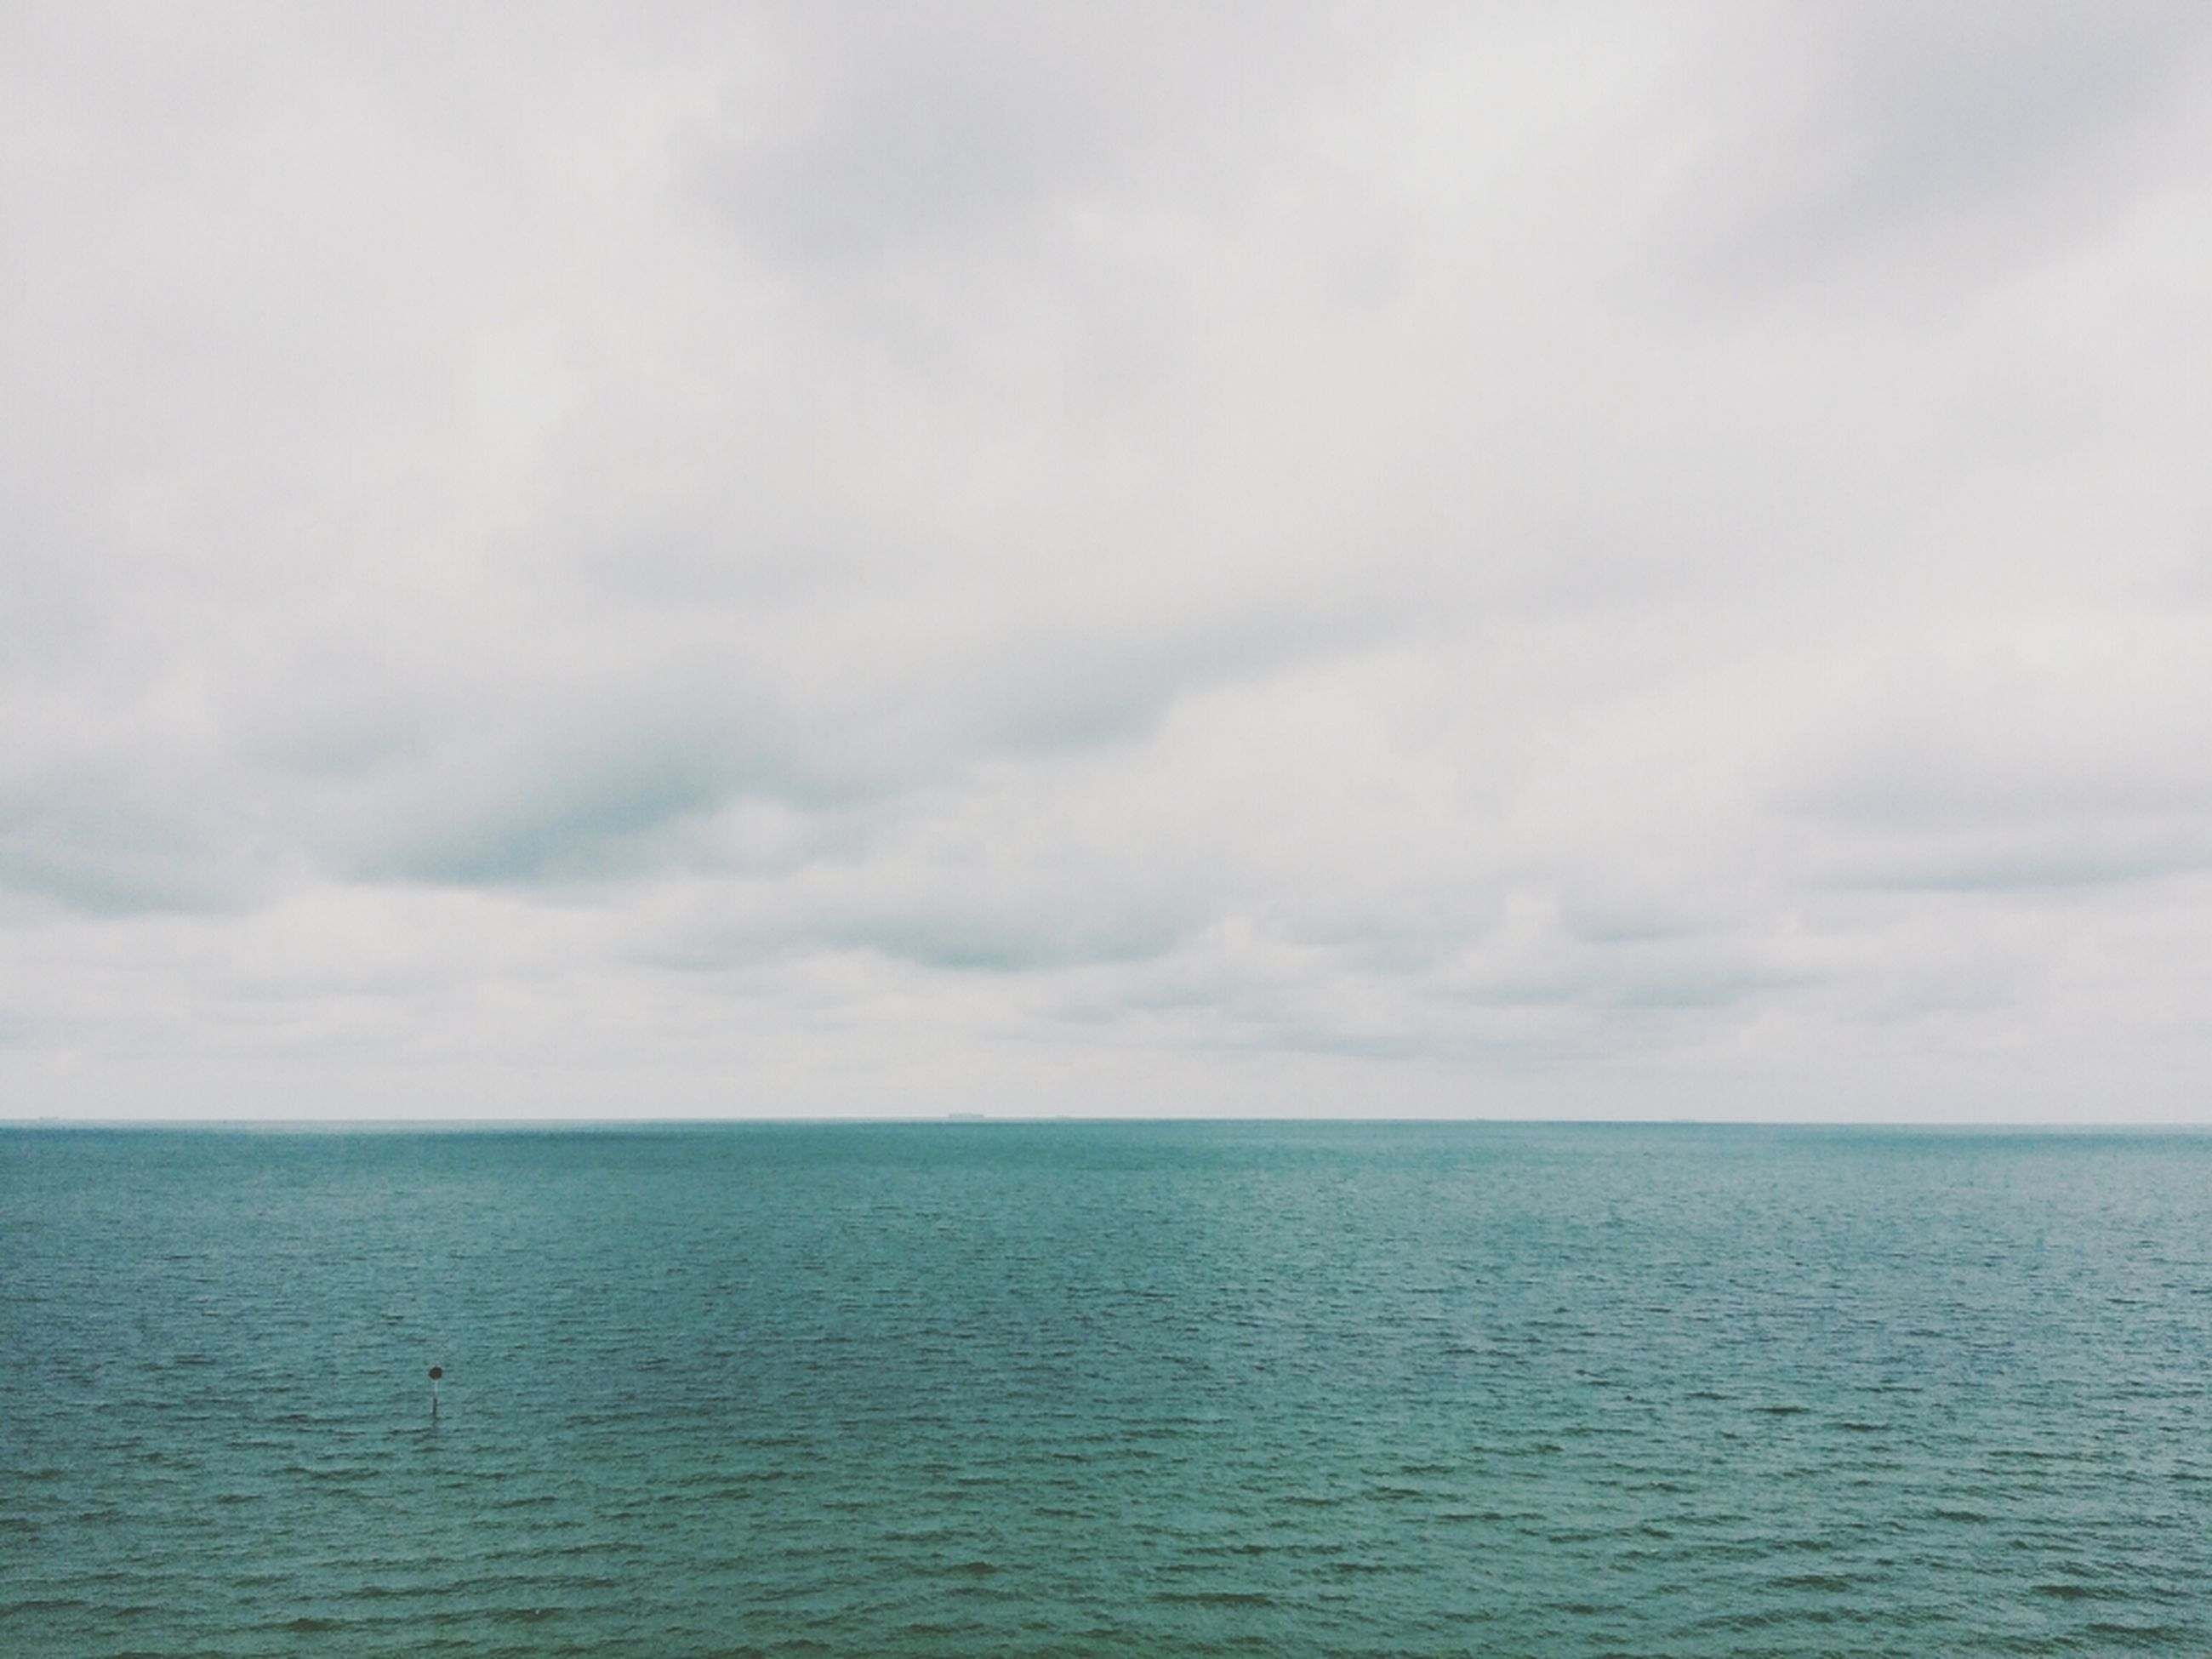 sea, sky, horizon over water, water, tranquil scene, waterfront, scenics, tranquility, beauty in nature, cloud - sky, nature, cloudy, idyllic, cloud, seascape, rippled, overcast, outdoors, day, weather